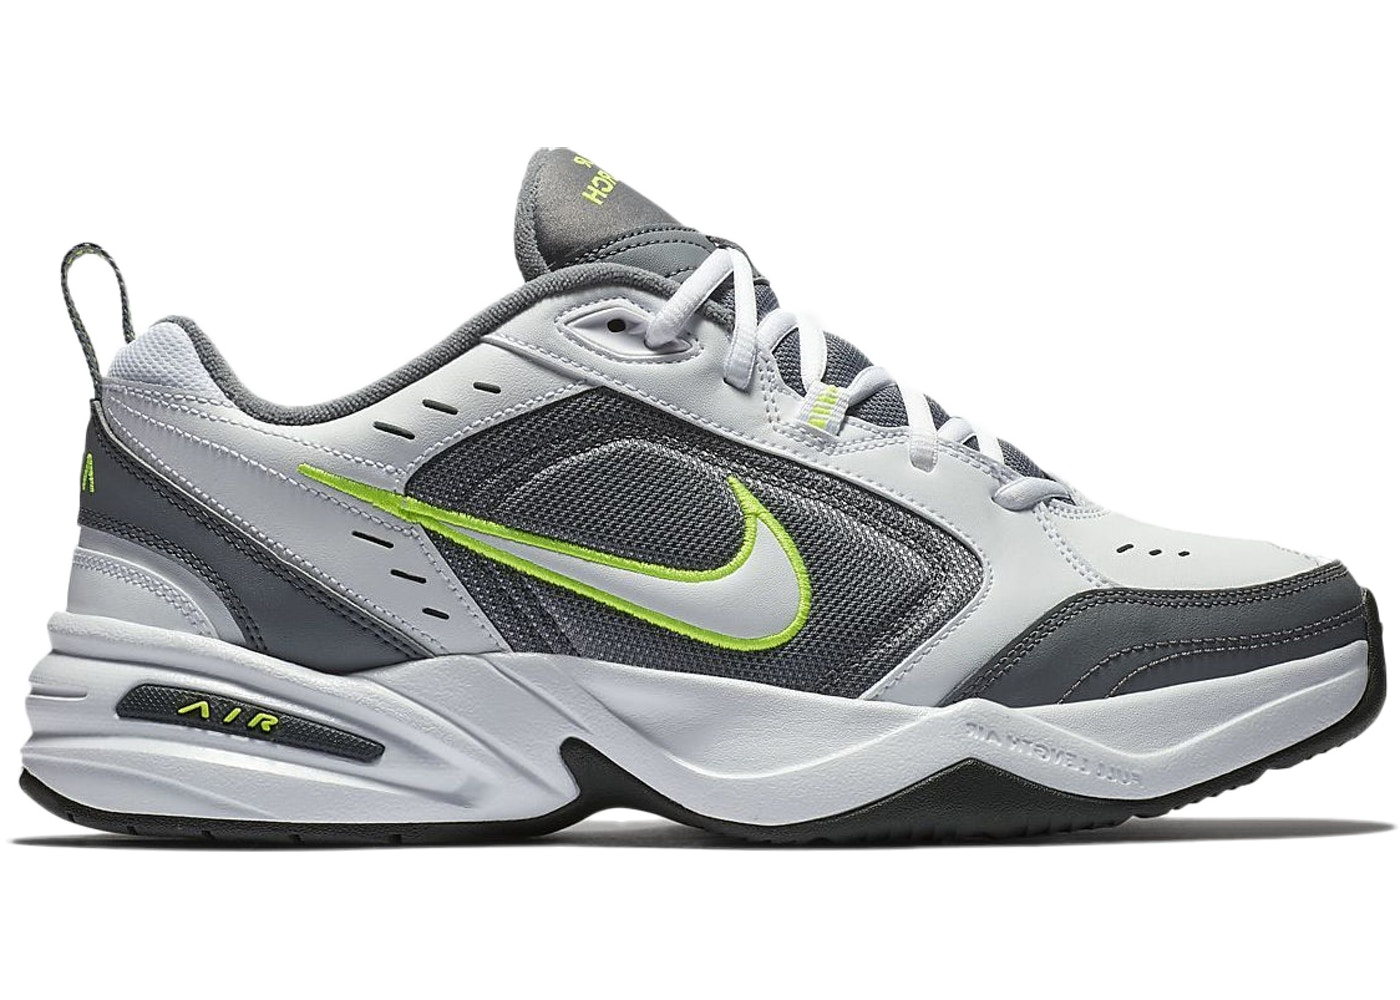 96088ea26a4 Nike Air Monarch IV White Cool Grey Anthracite White - 415445-100